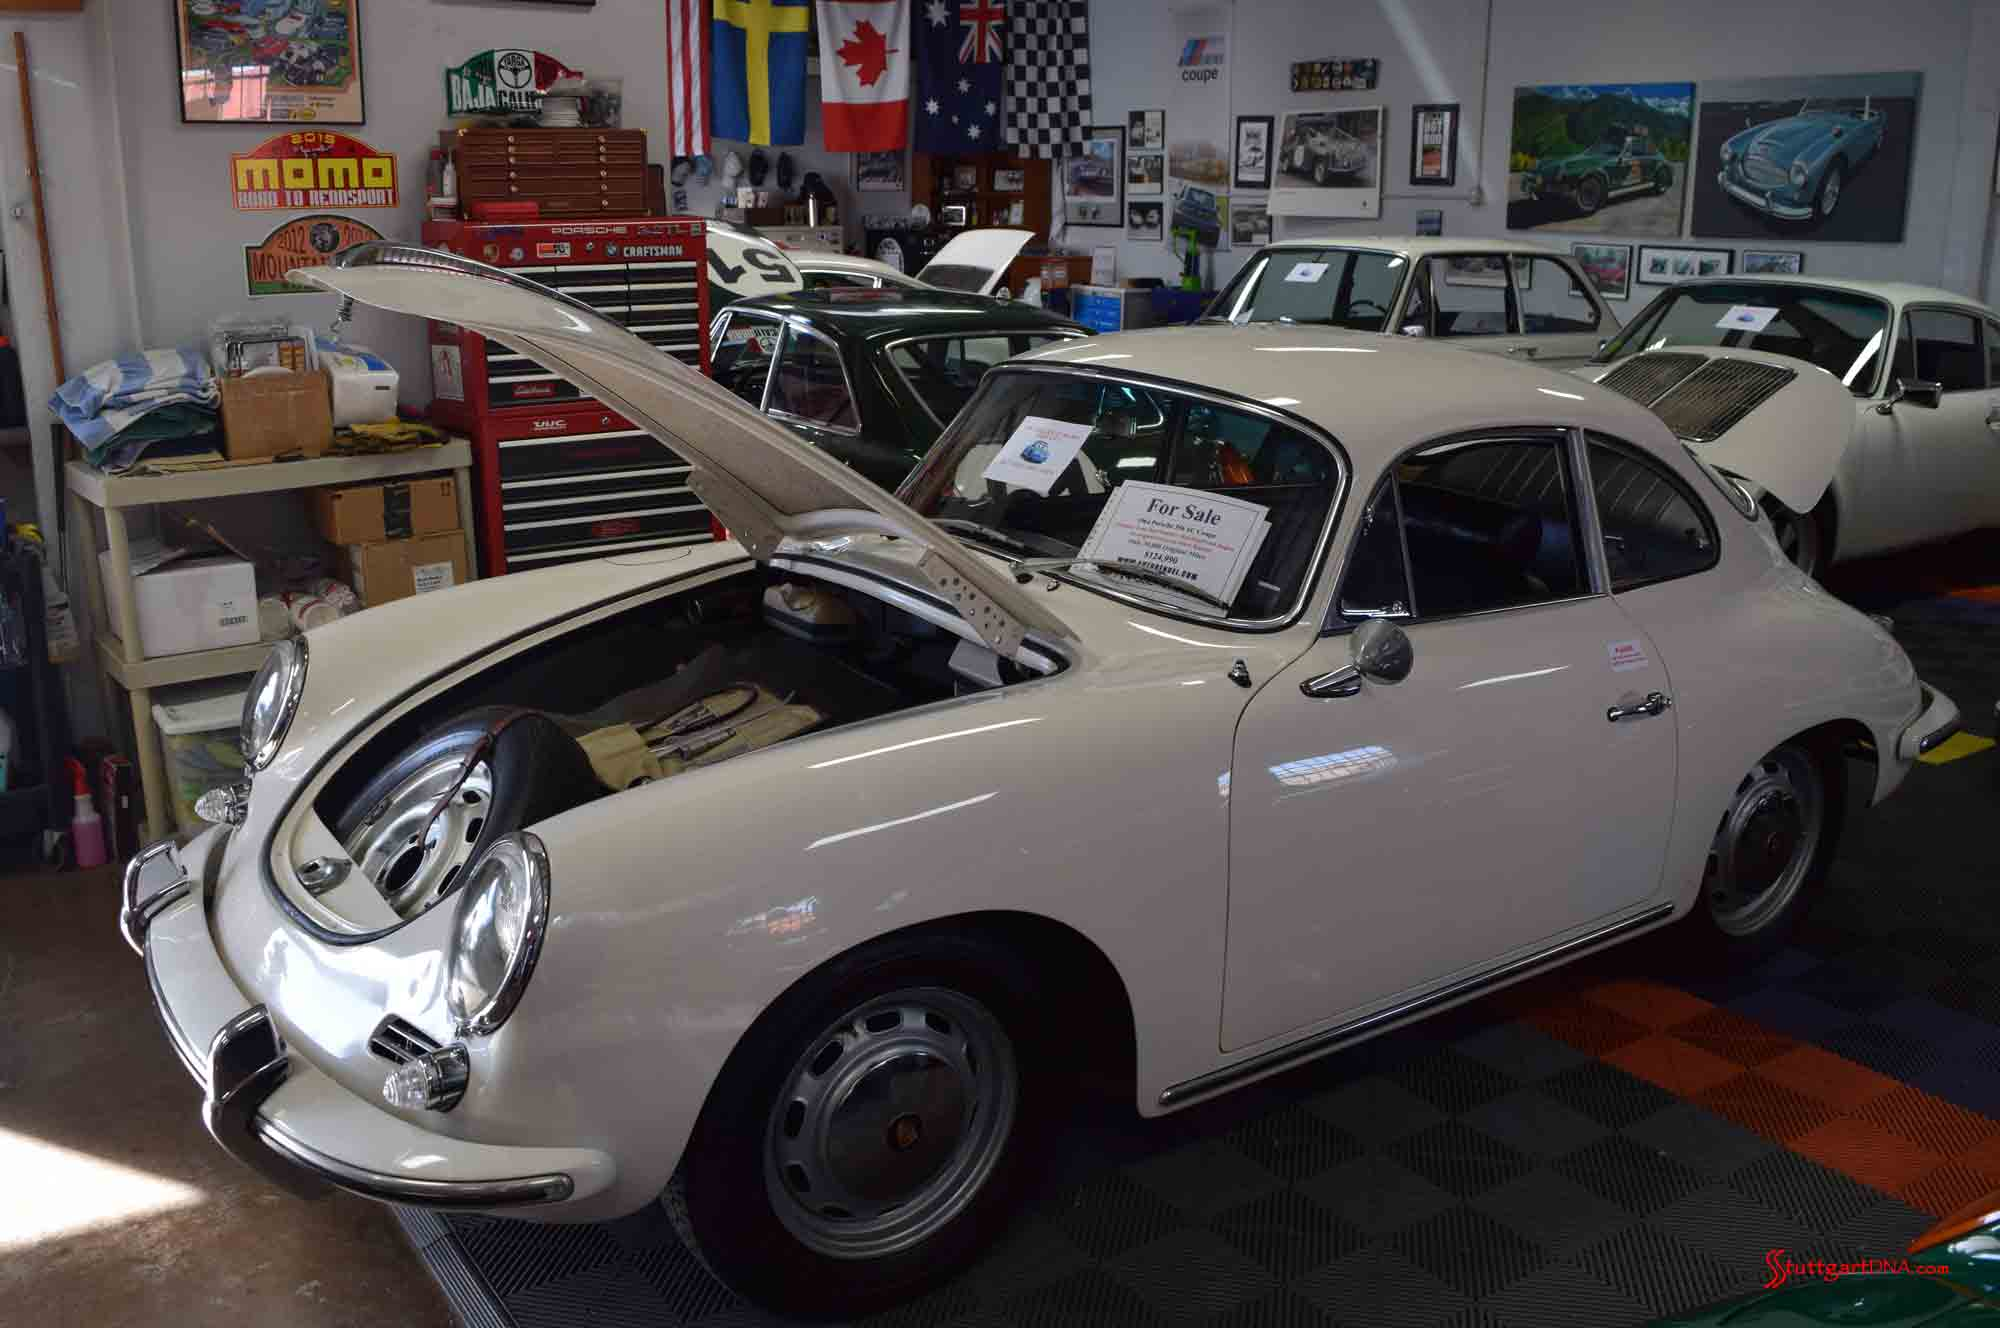 2017 Porsche L.A. Literature, Toy and Memorabilia Meet Weekend: Seen here is a a white numbers-matching 1964 356 SC, with only 39,000 miles, for sale during the 2017 Auto Kennel Open House. Credit: StuttgartDNA